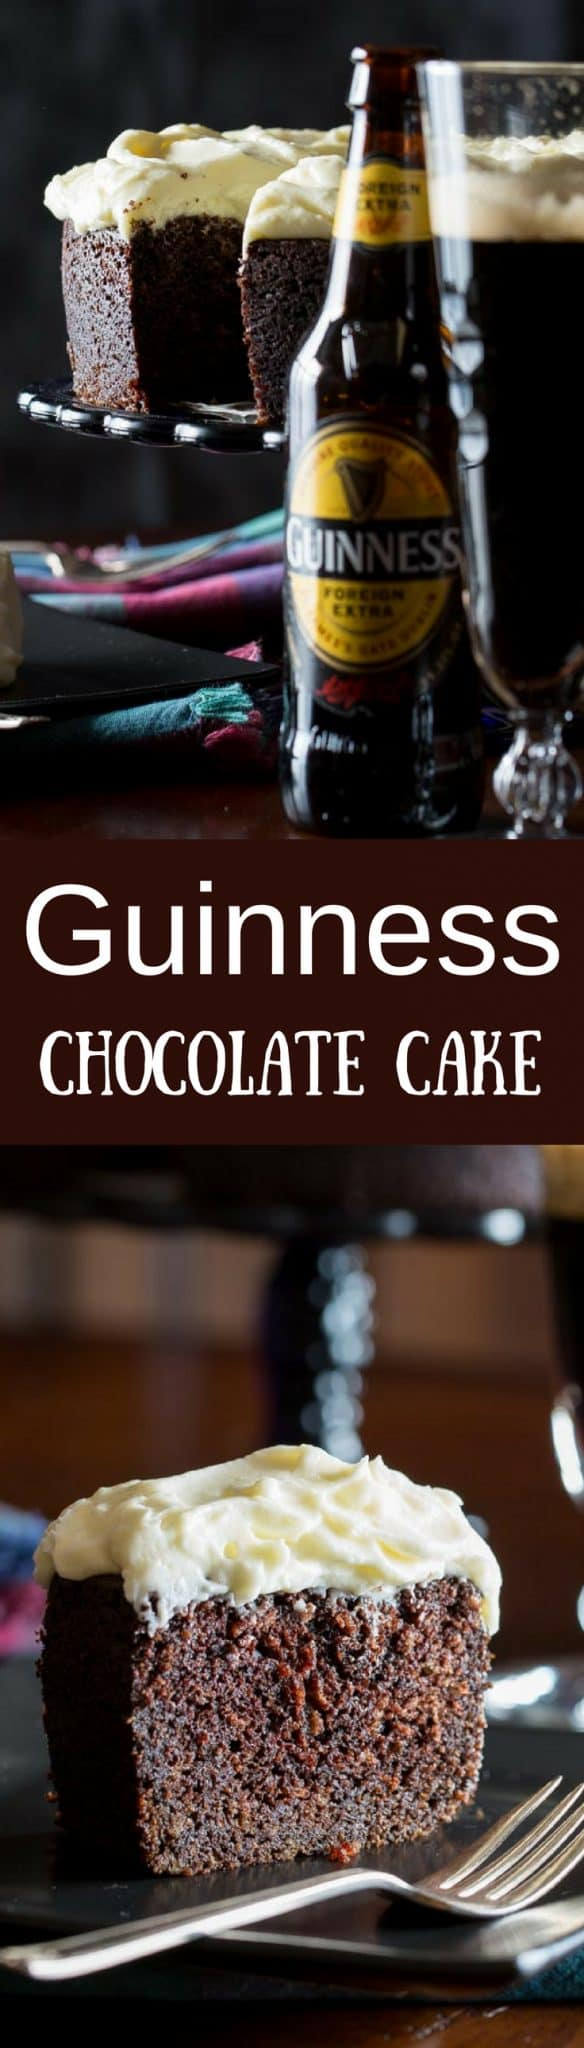 Guinness Chocolate Cake - Saving Room for Dessert